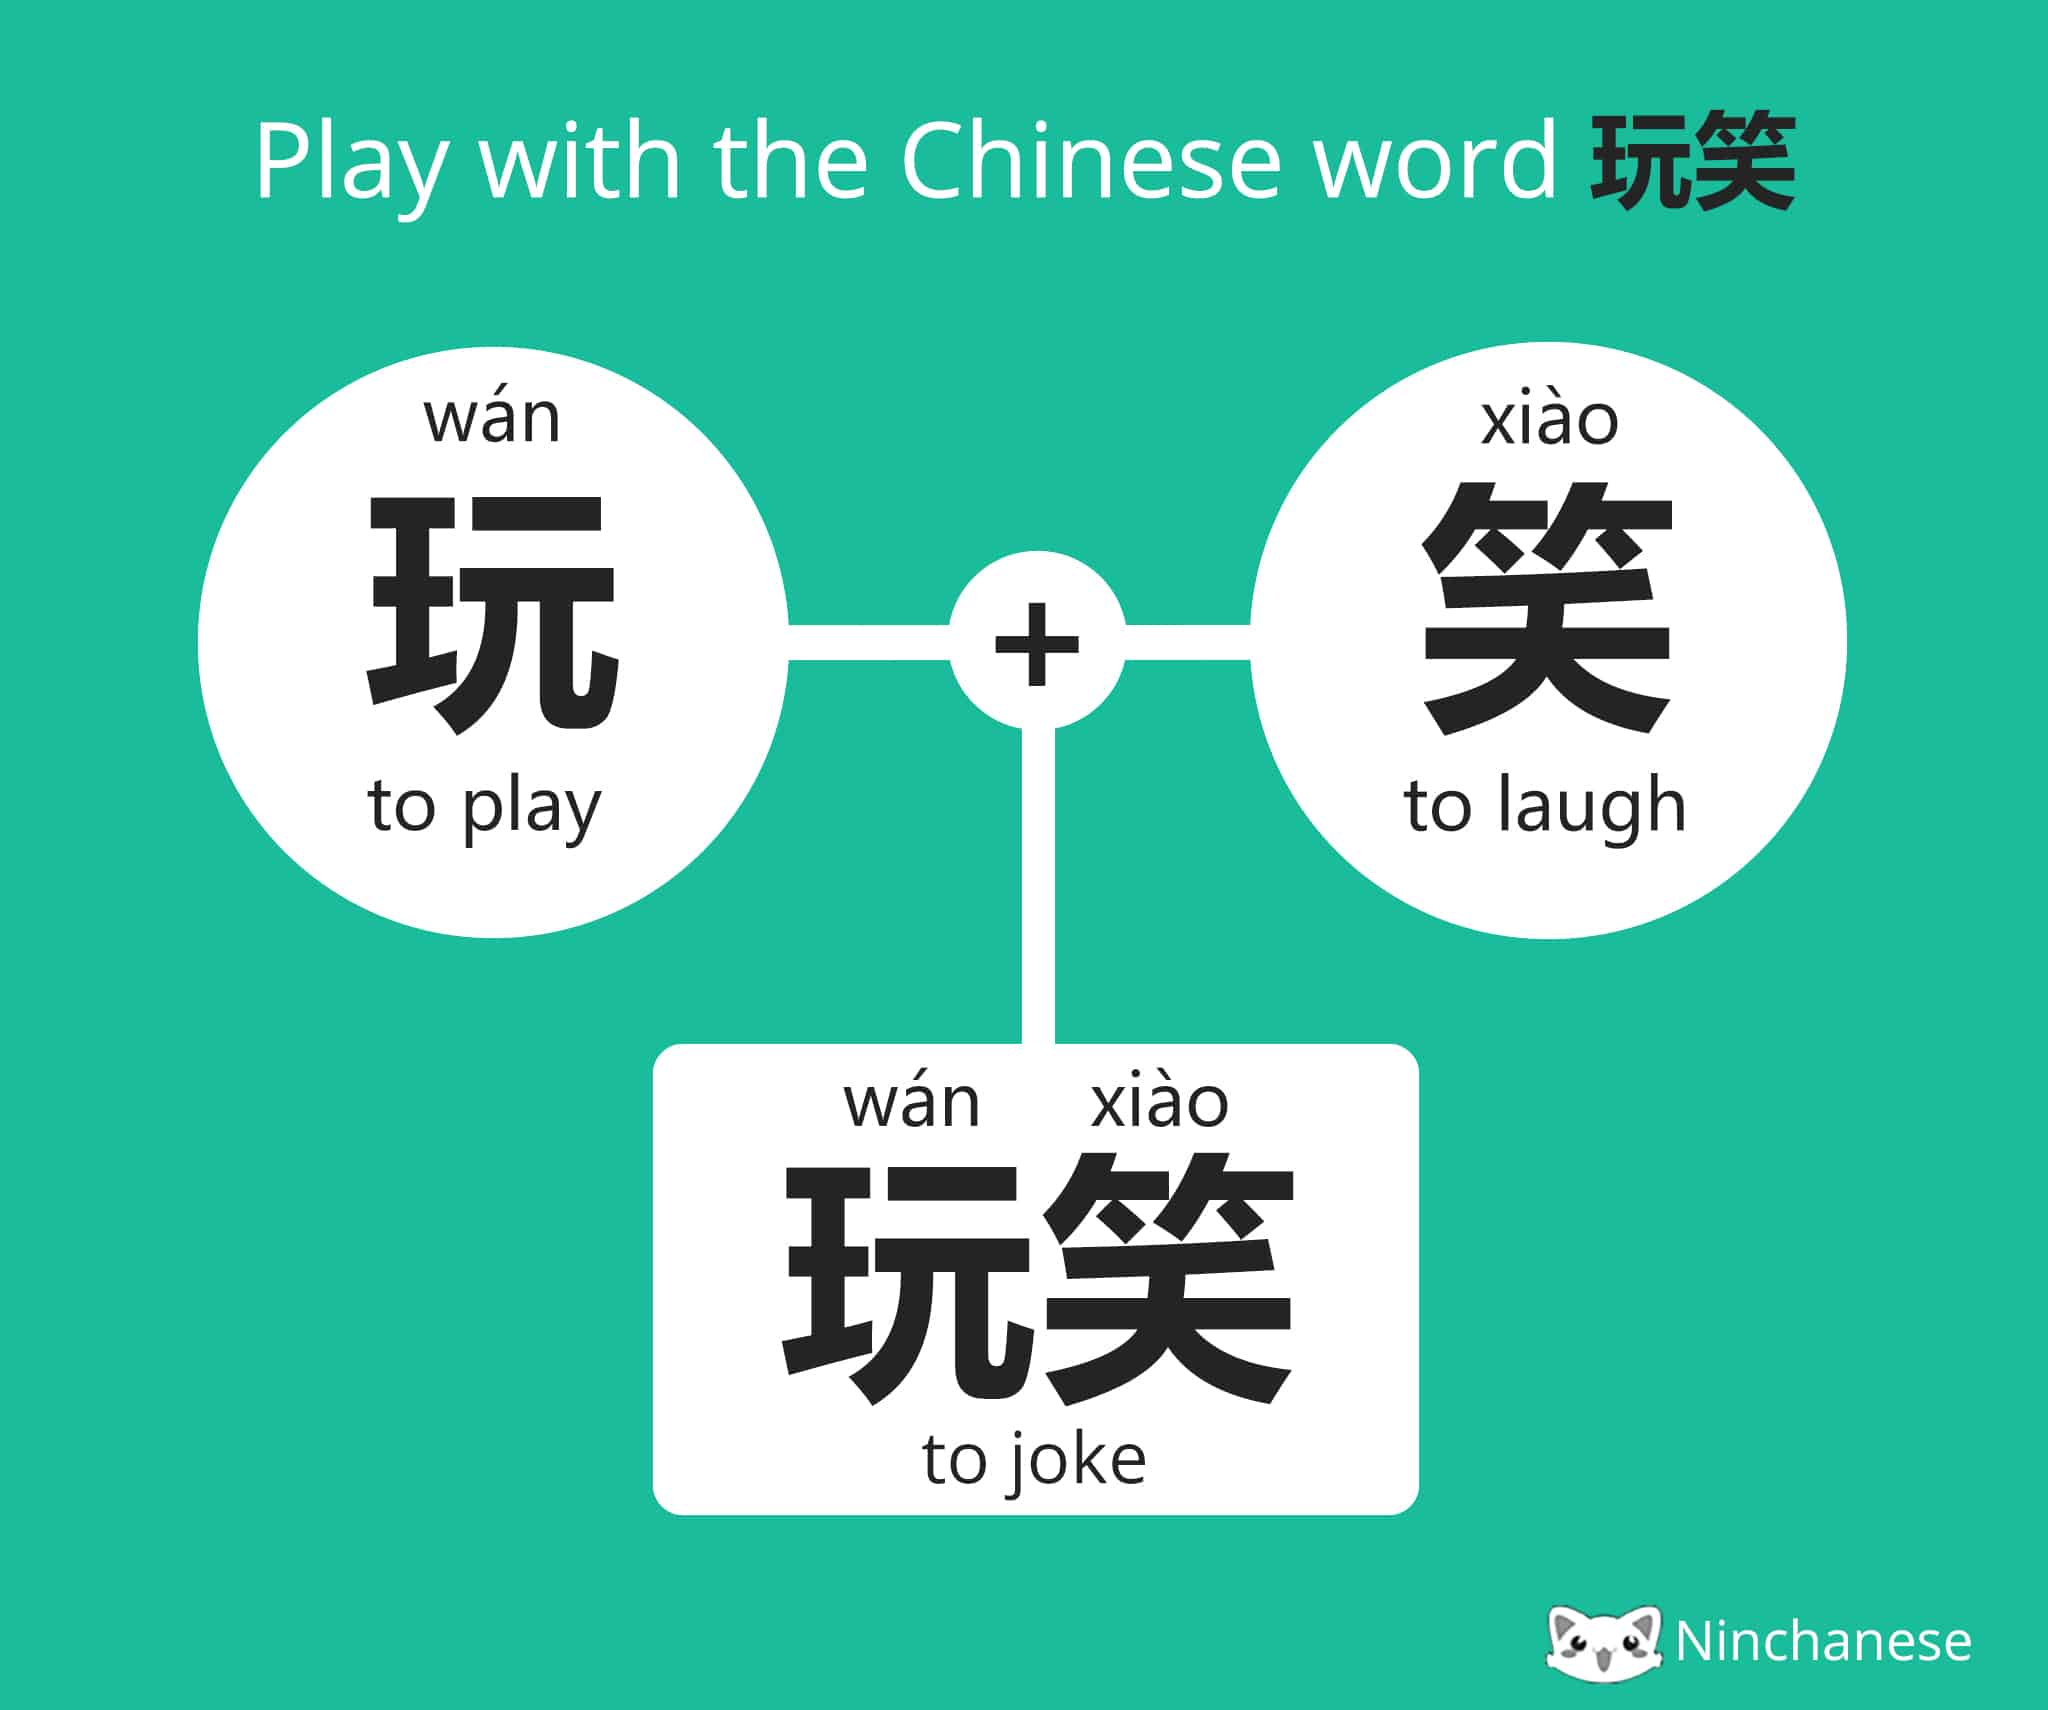 how to say to joke in Chinese